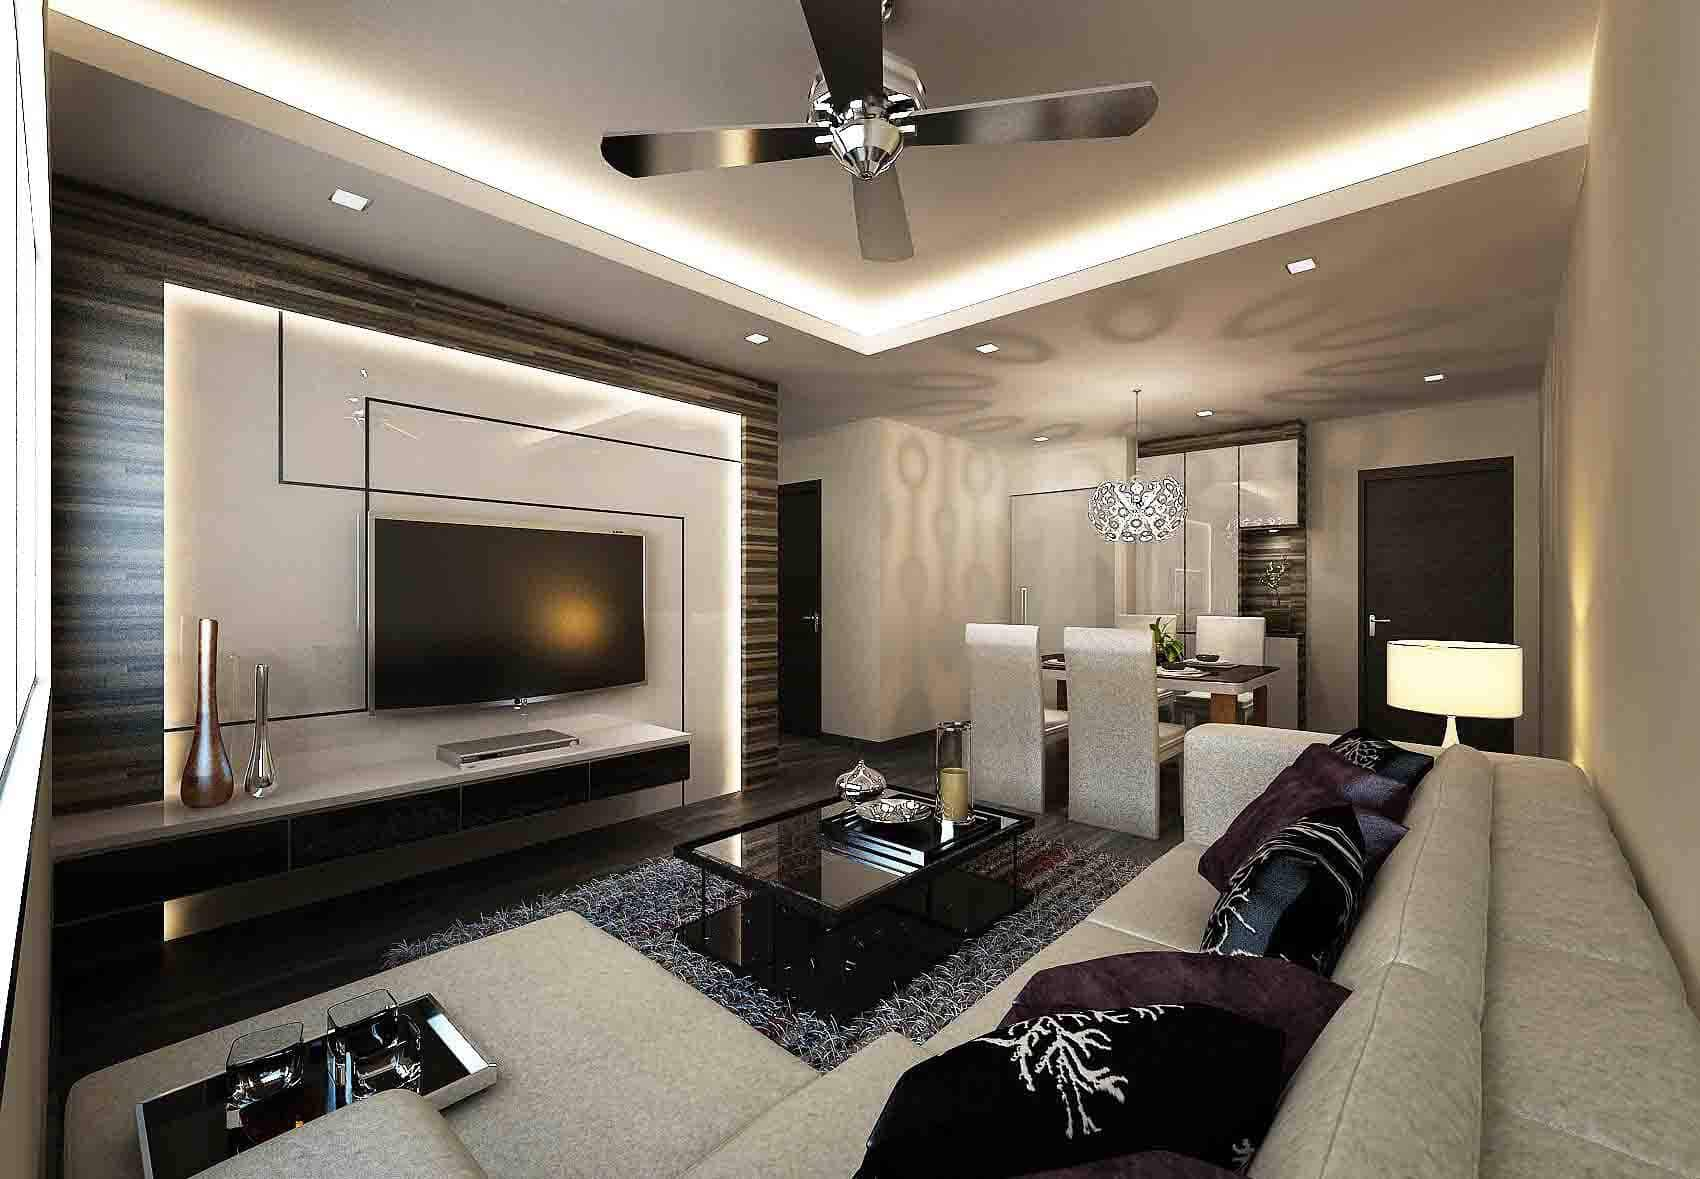 5 elements of a successful living room concept juz interior for Living room concepts